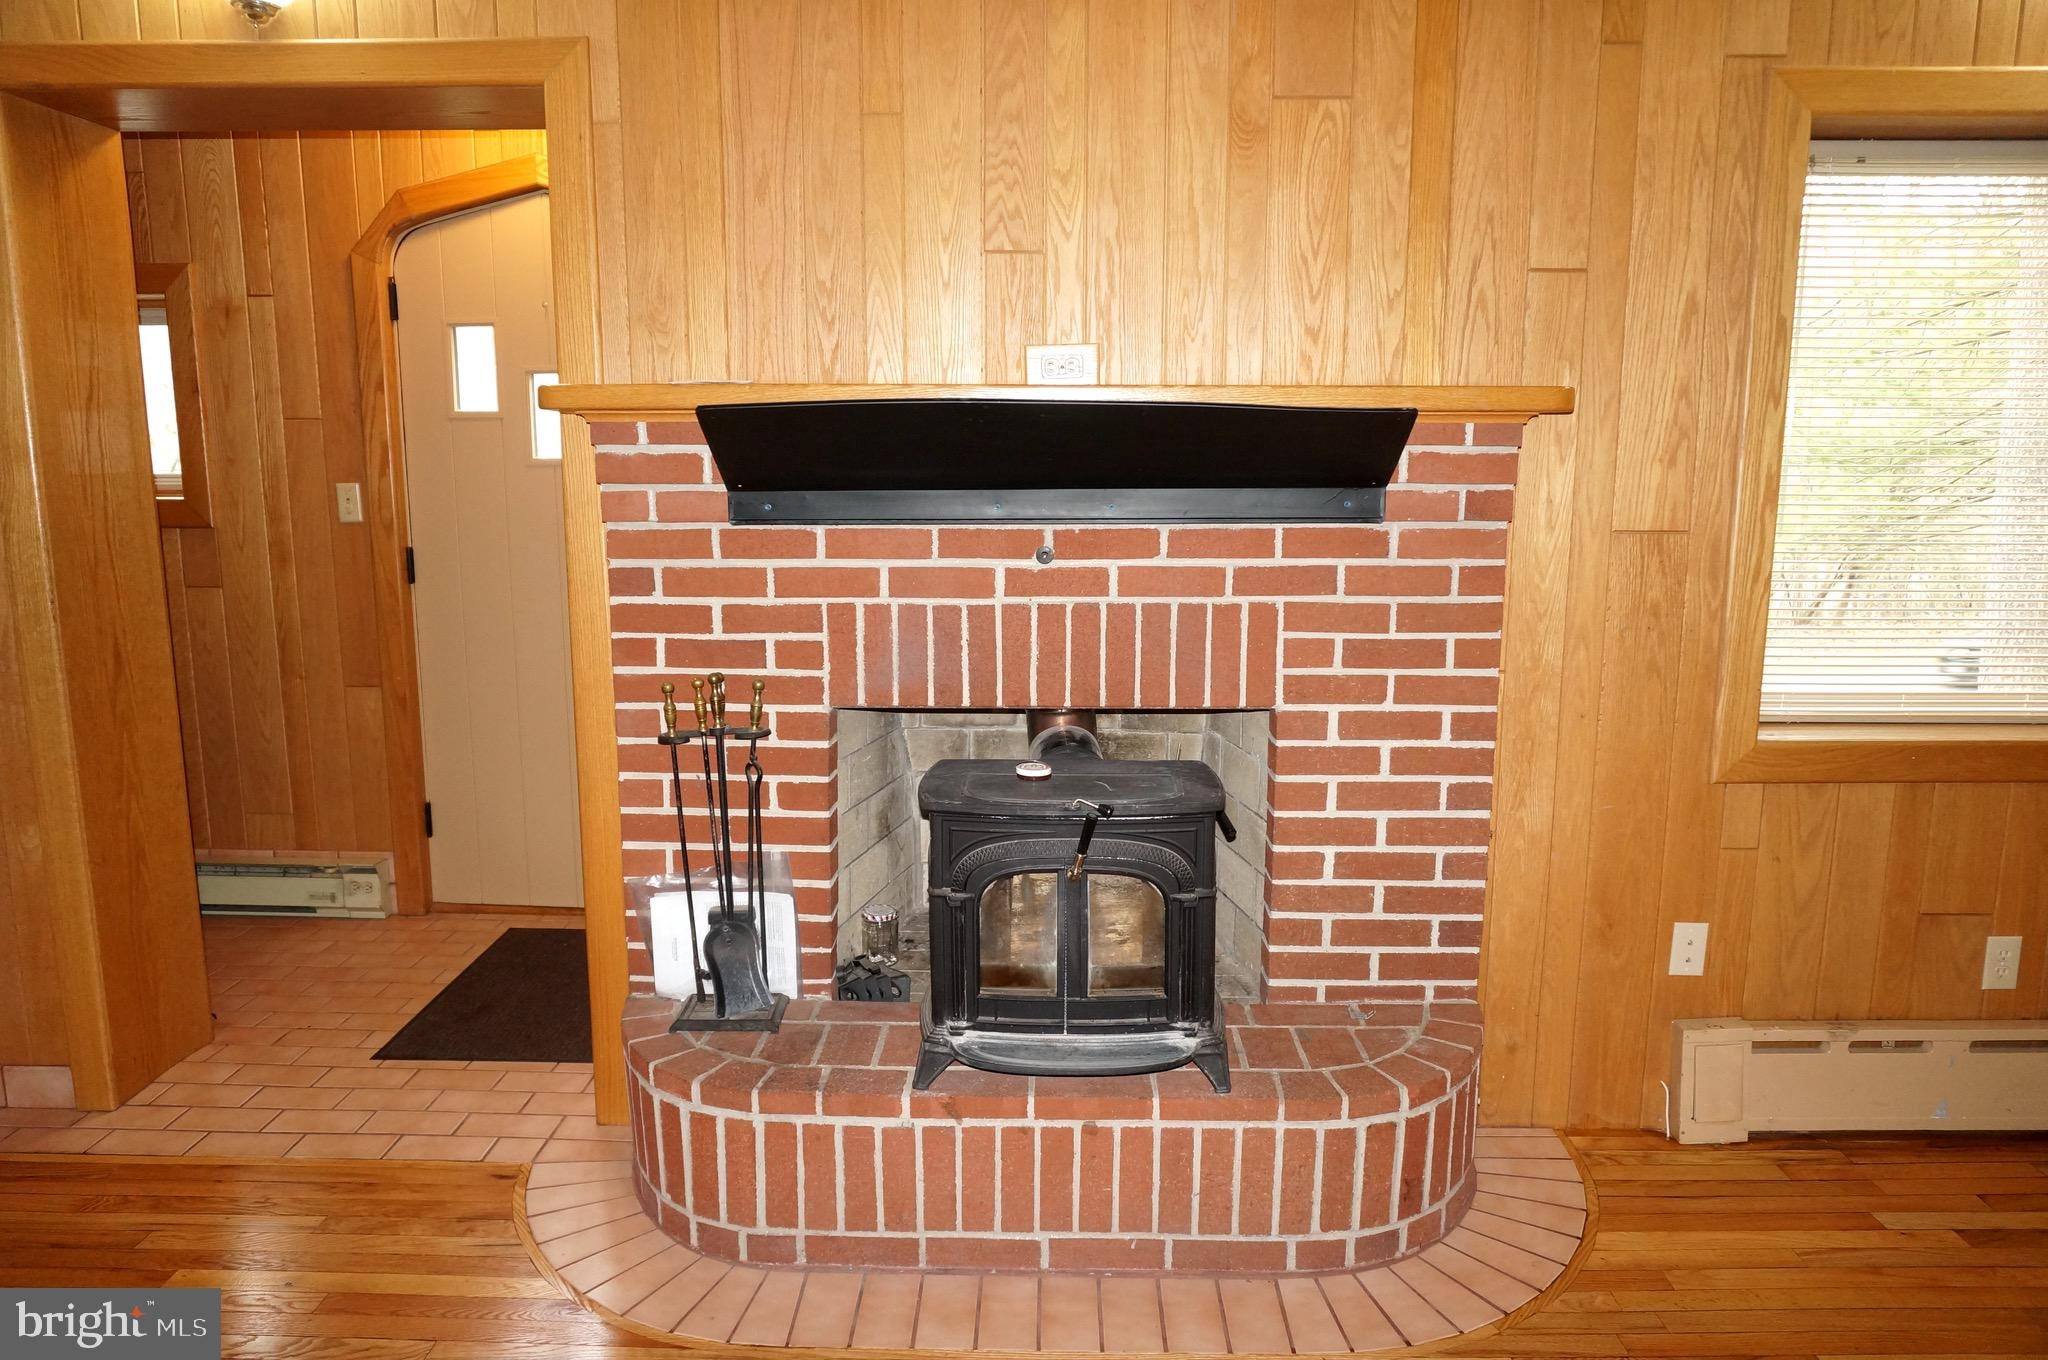 Brick Fireplace with Efficient Wood Stove Insert